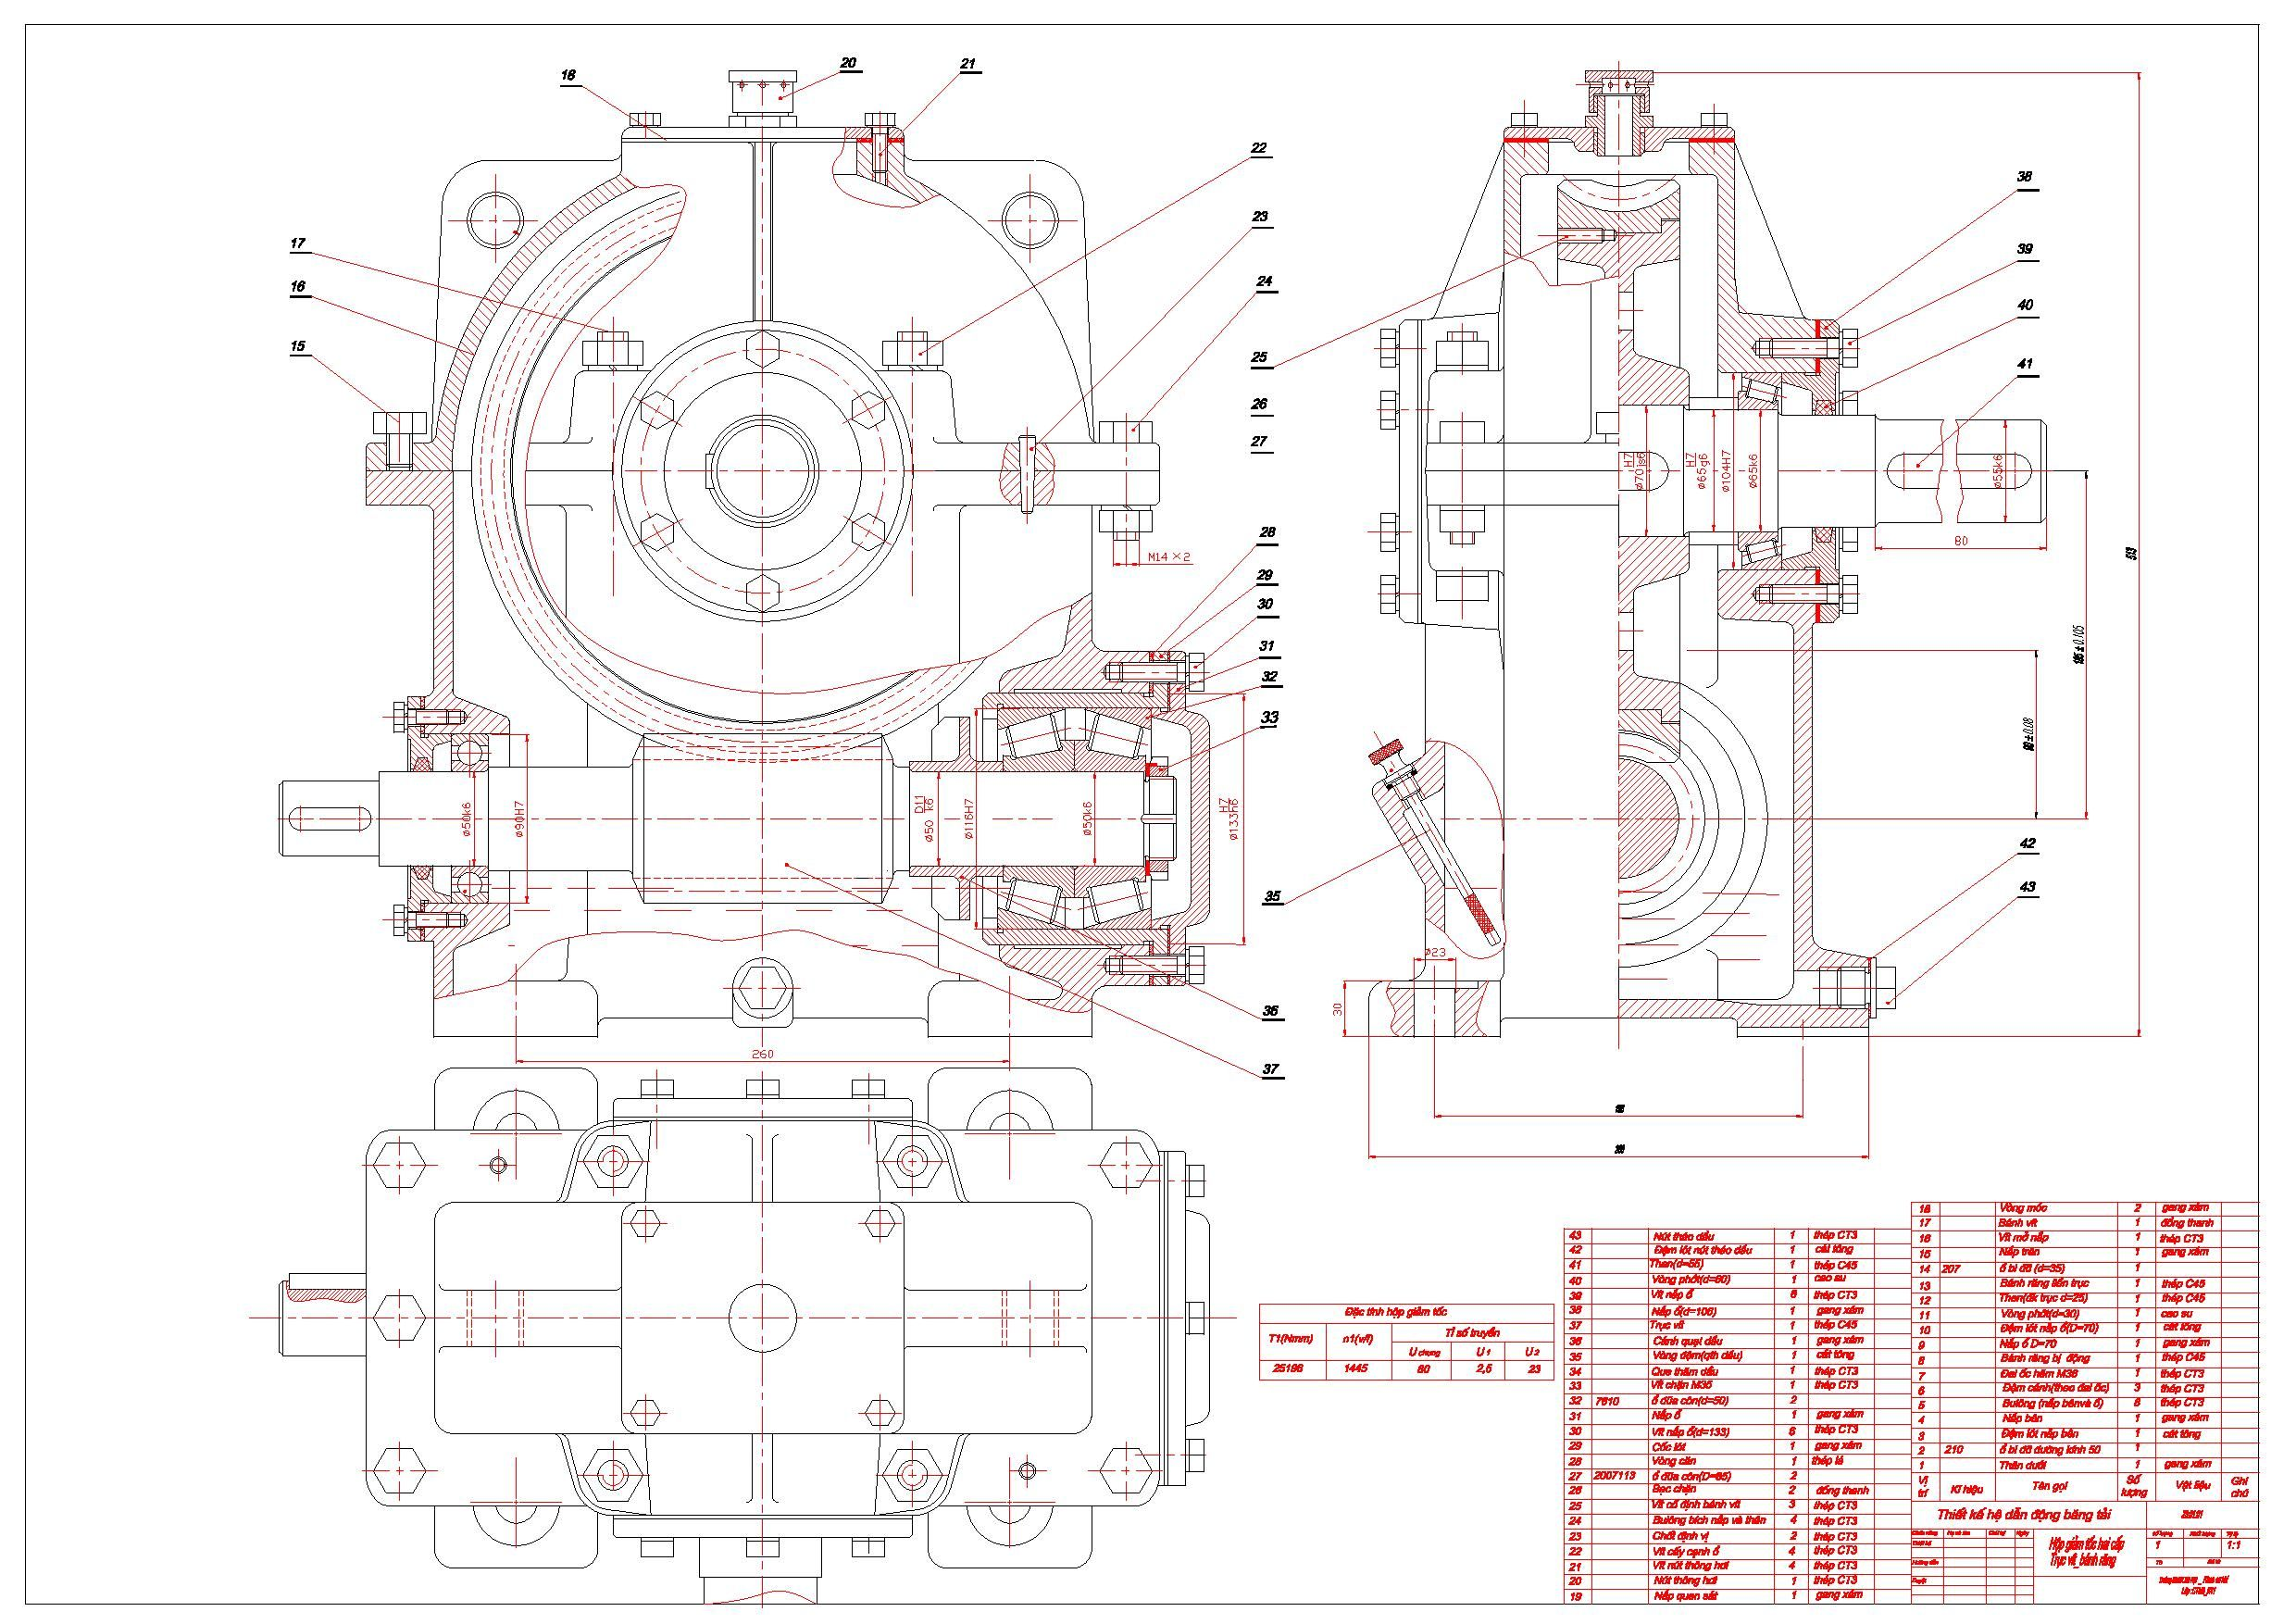 Pin By Memo Do On Mechanical Engineering Pinterest Drawings 3d Electrical Drawing Using Cad Sketch Design Autocad